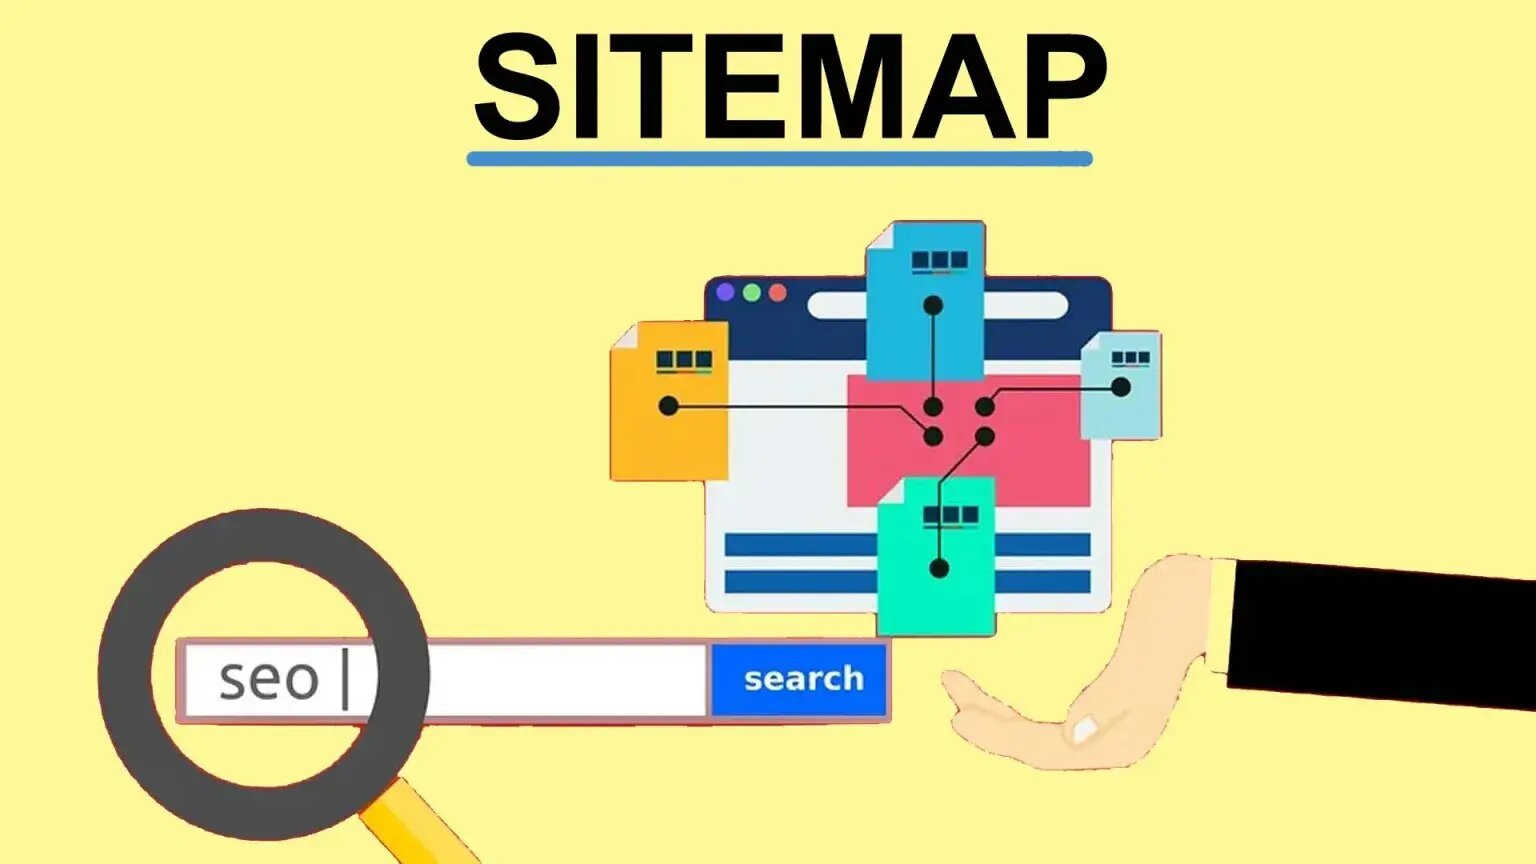 About SiteMap